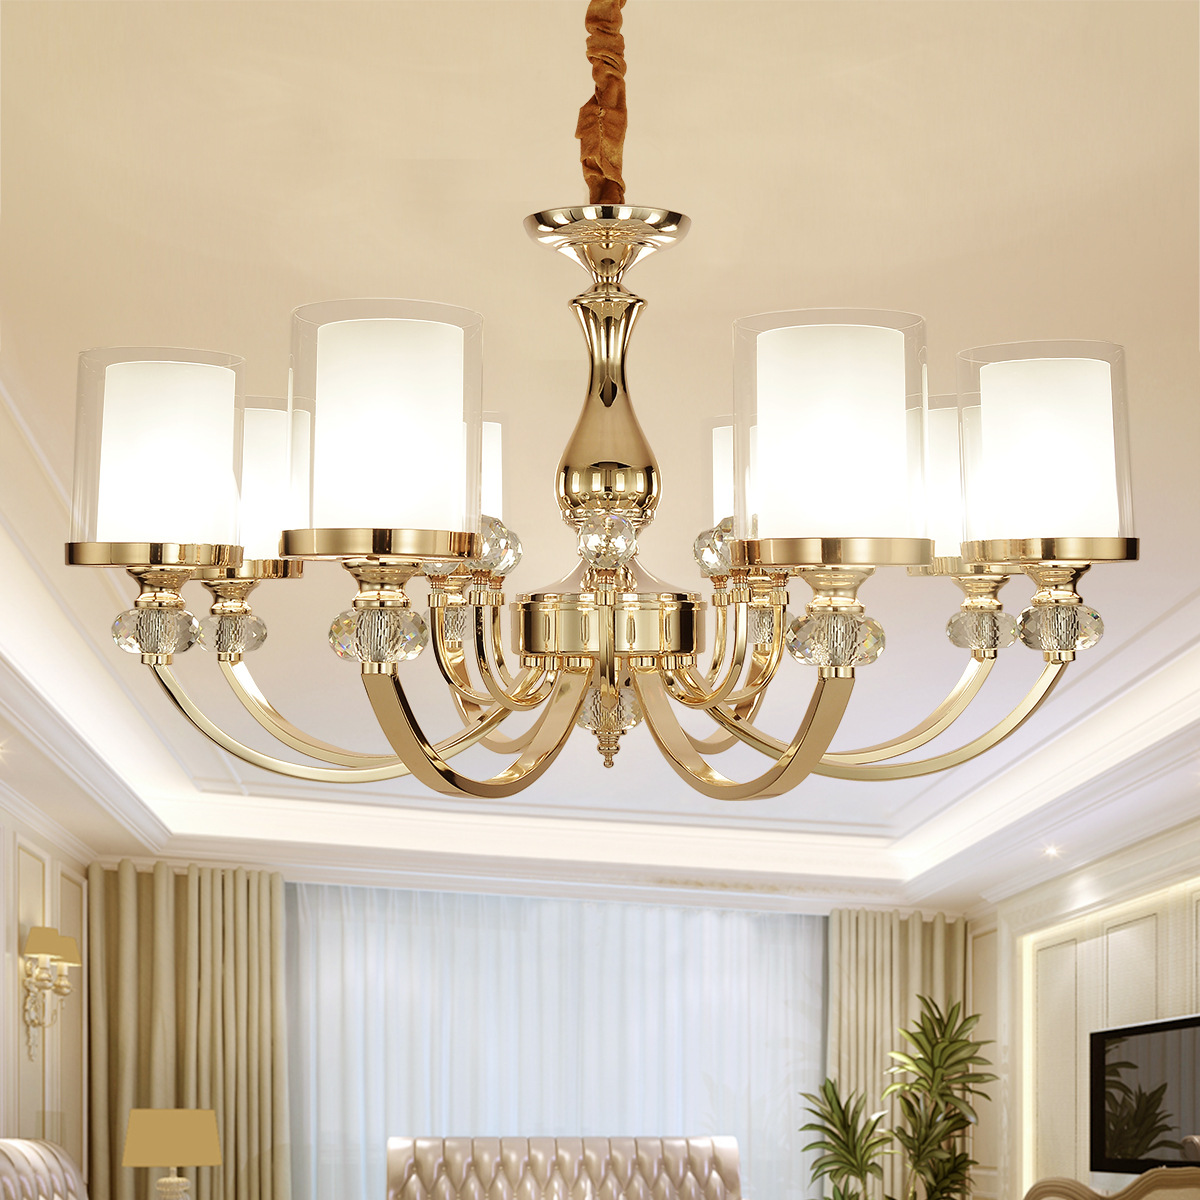 (EICEO) Living Room Lamp Crystal Chandelier European Modern Minimalist Bedroom Lighting Restaurant Atmosphere LED Pendant Lamps simfer b6em13001